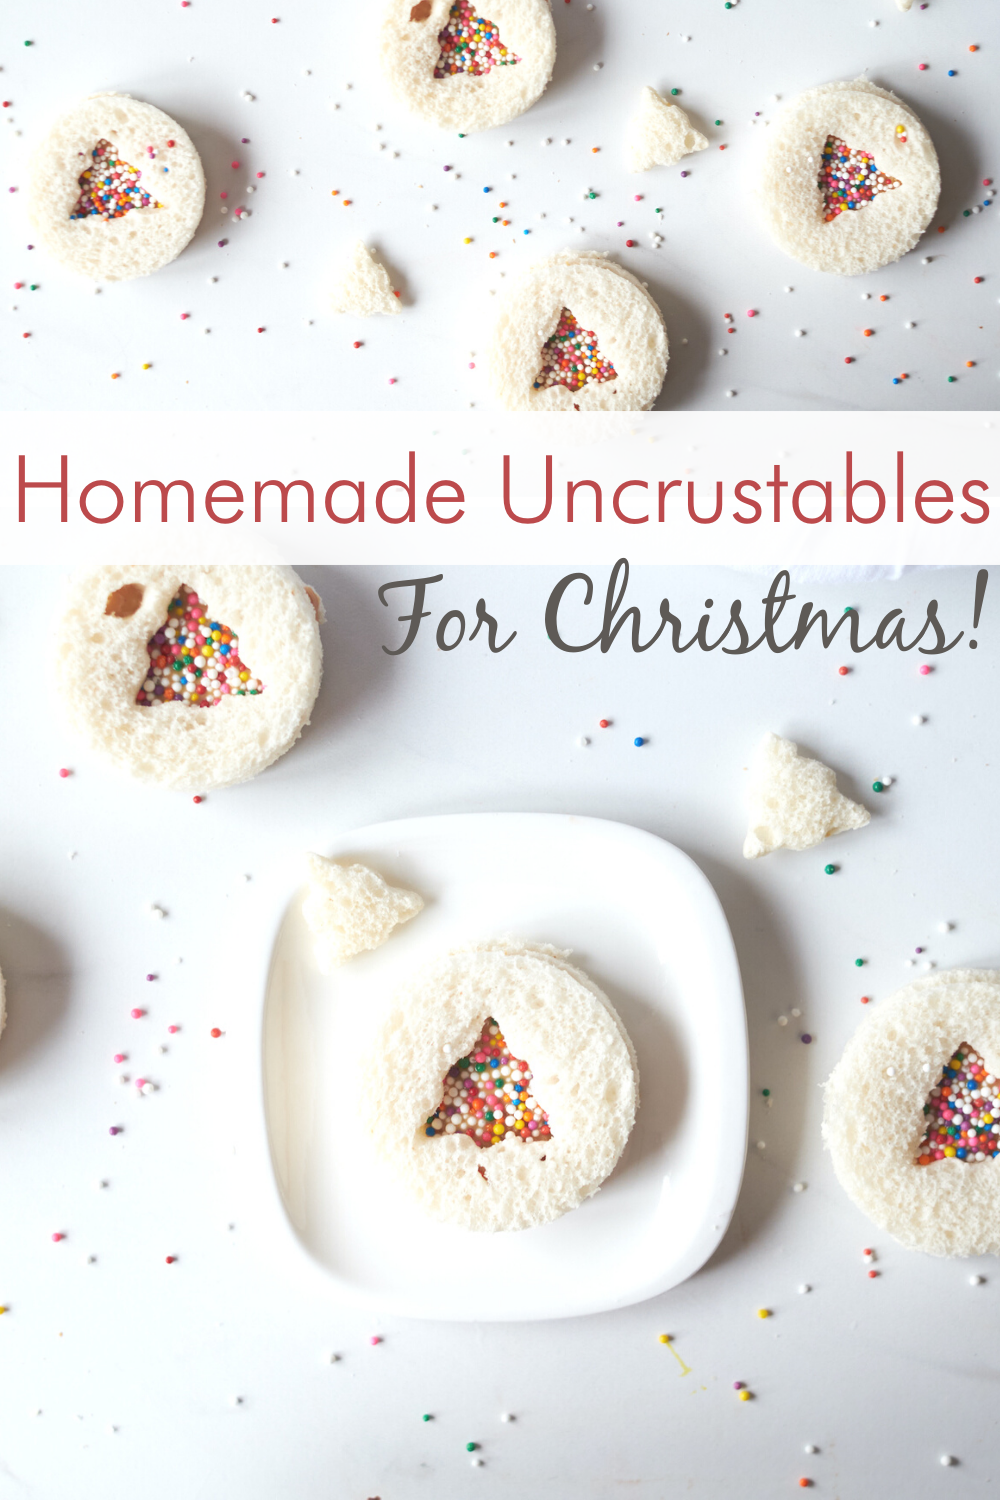 Skip the freezer aisle and make your own homemade version of uncrustables! The kids are going to love this festive Christmas spin on a lunchbox favorite!